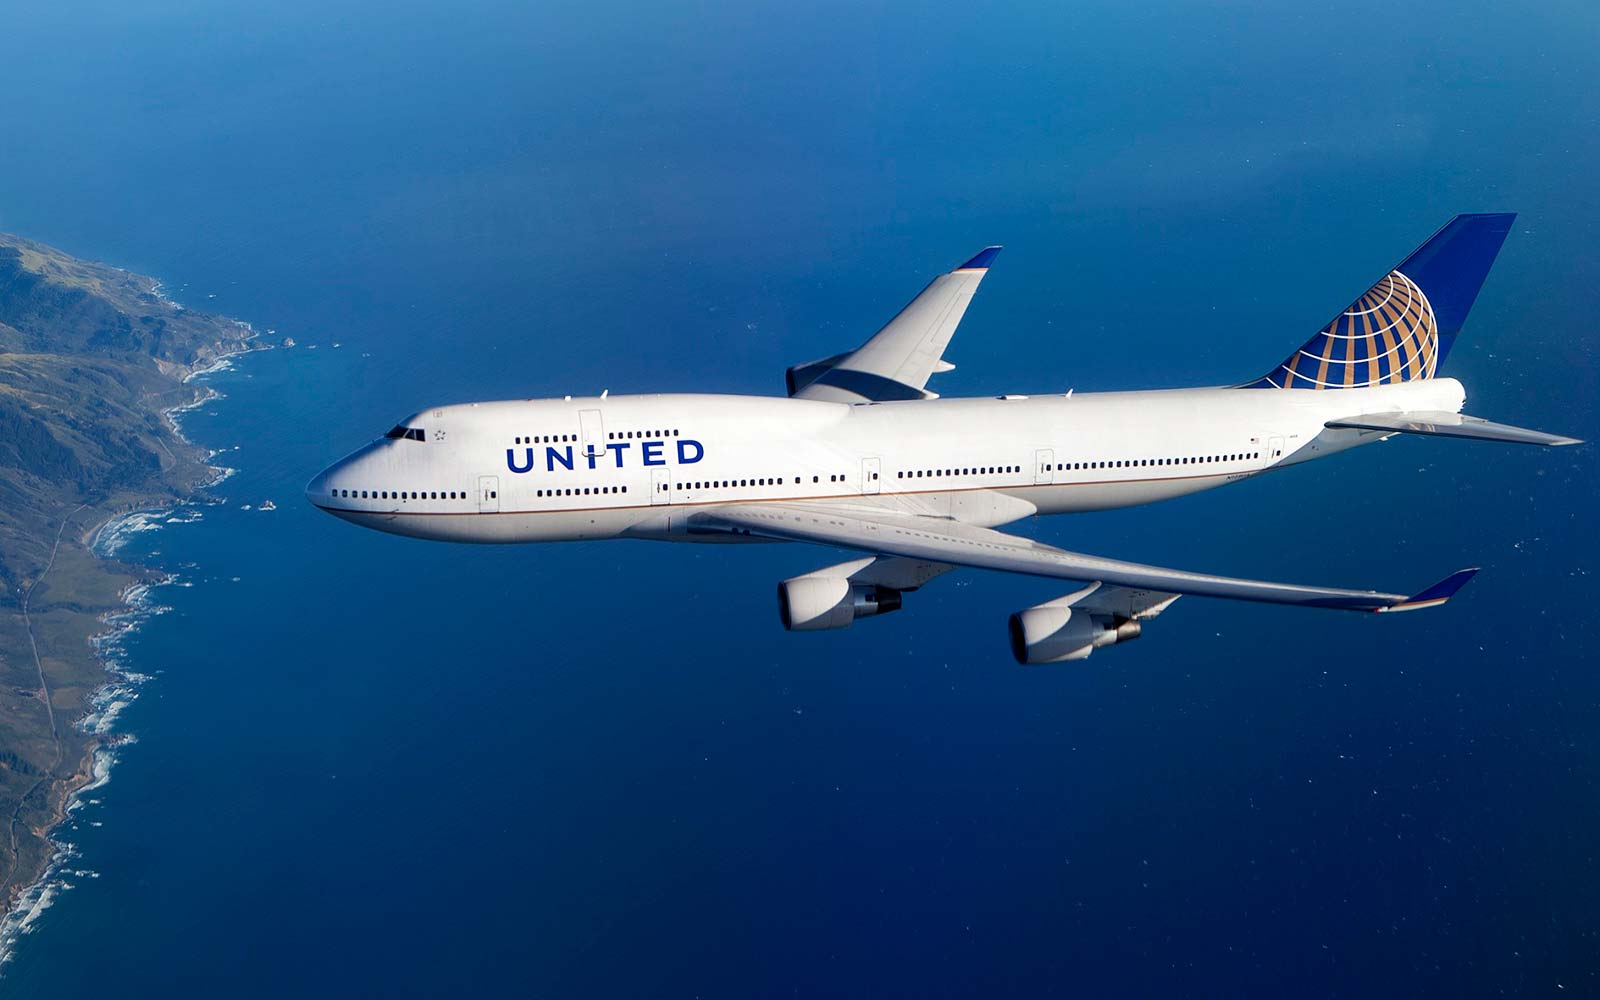 United Is Phasing Out the Boeing 747 — Here's How You Can Buy a Piece of History